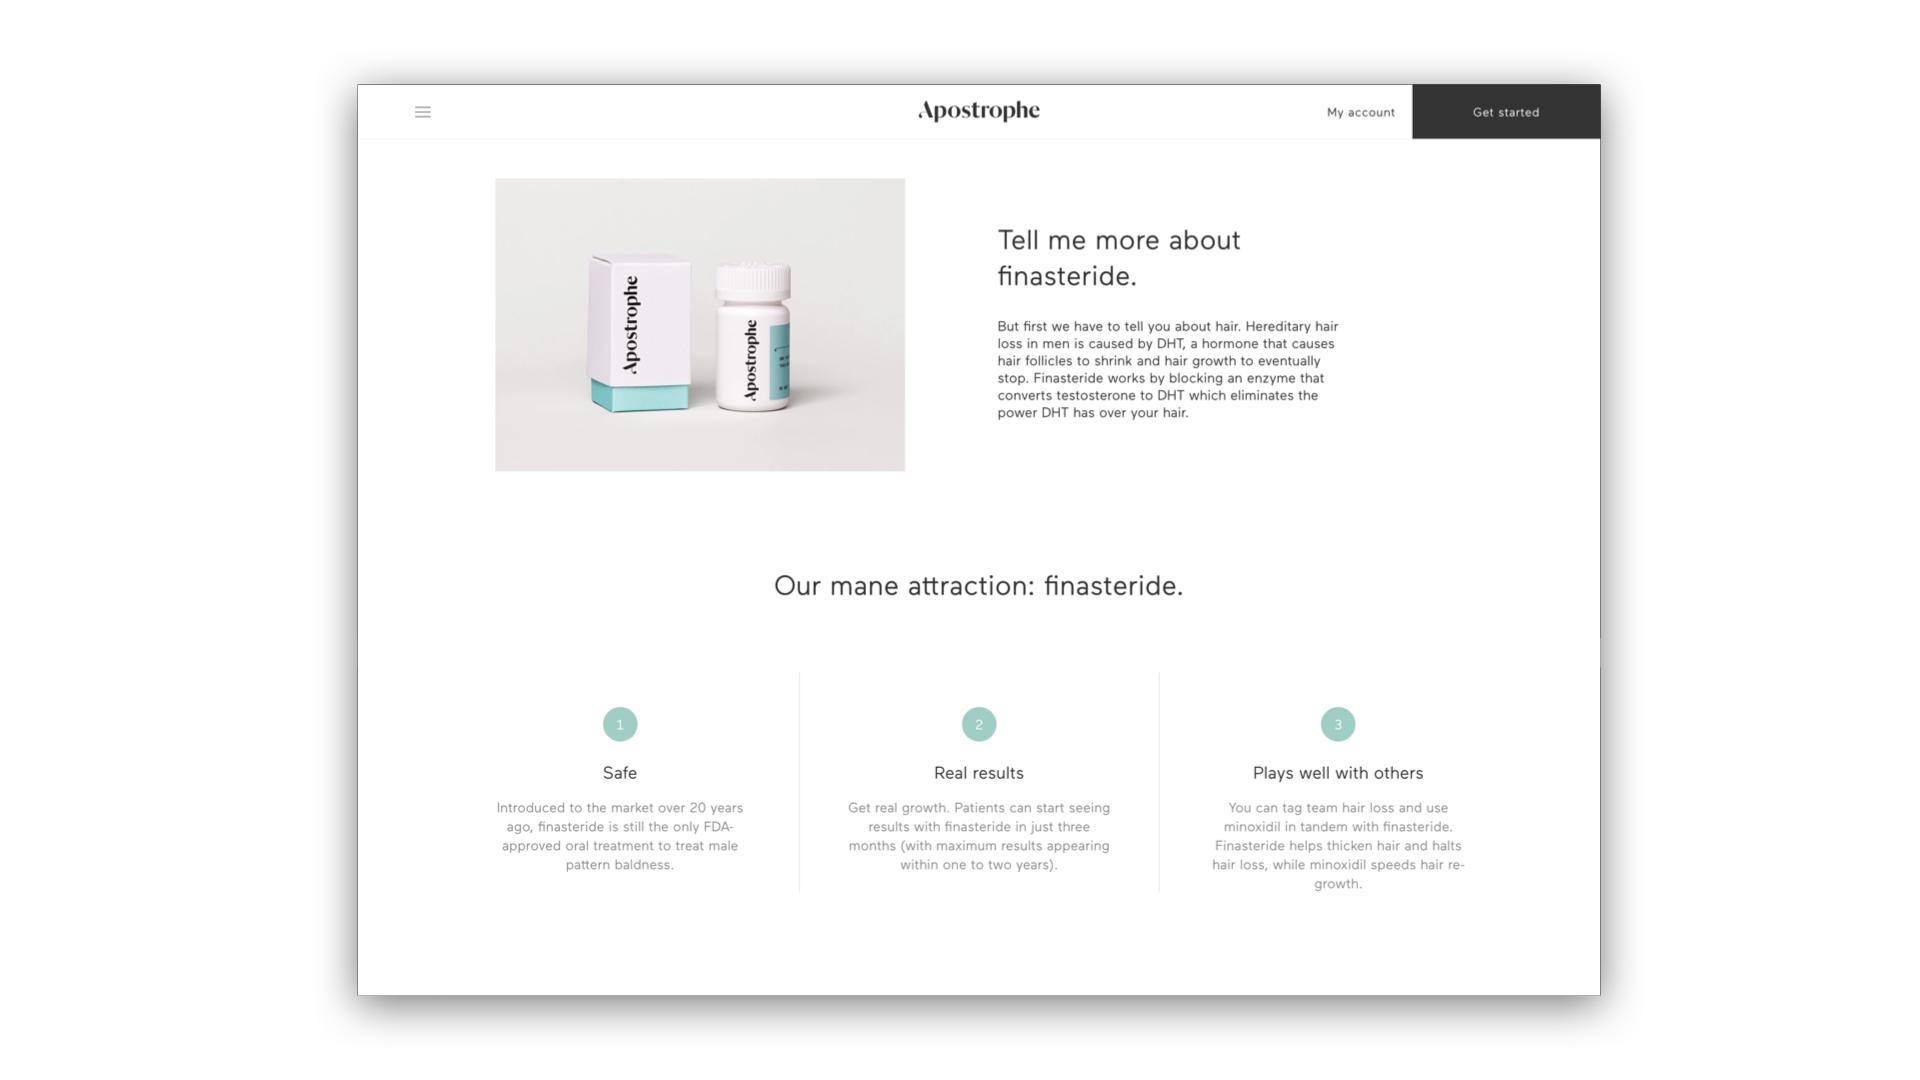 G & Co. is a DTC marketing agency and DTC eCommerce agency: Apostrophe has an excellent website experience to ensure users get the skin treatment they need with ease